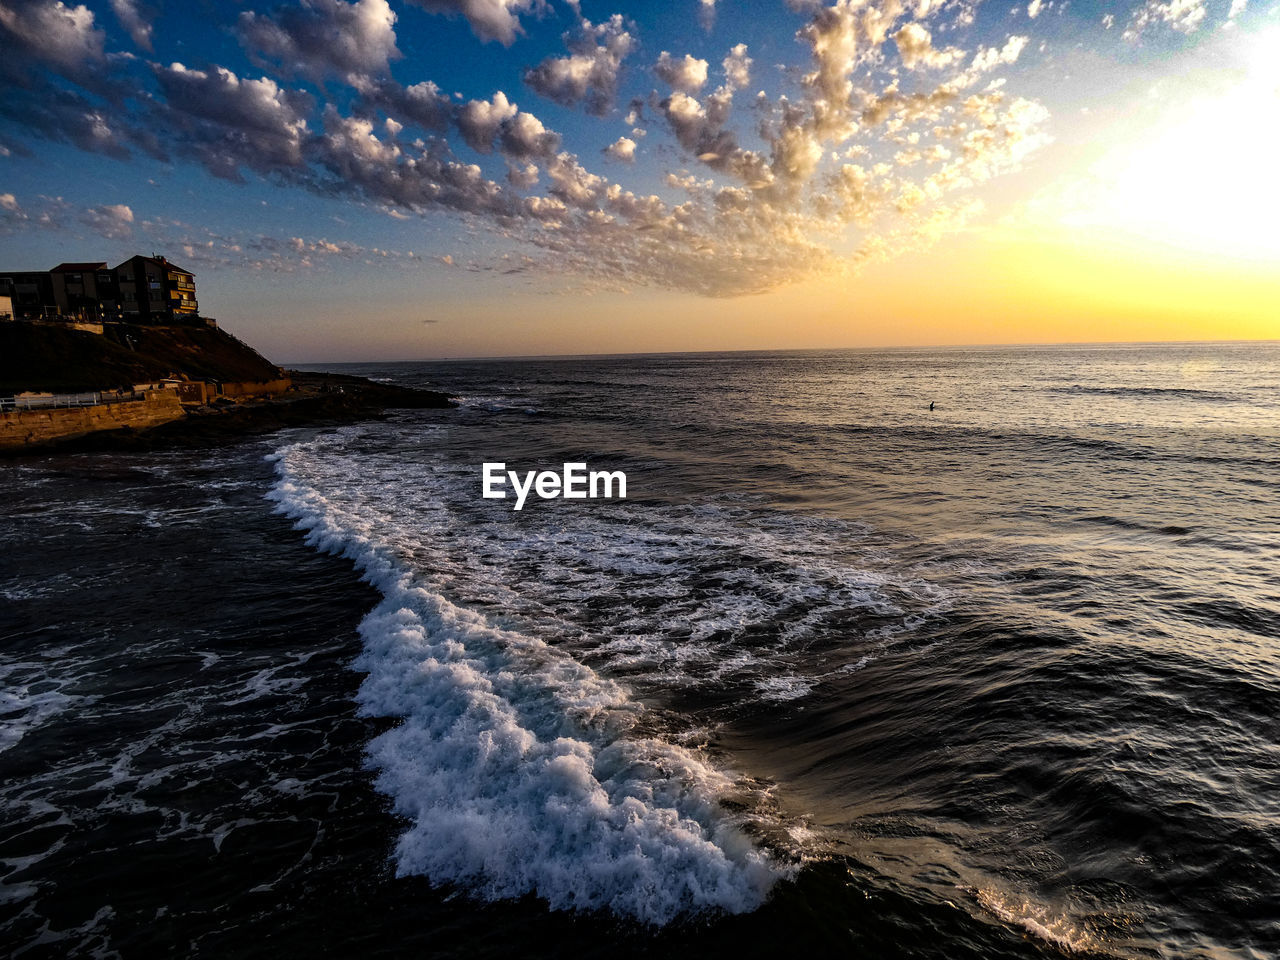 water, sea, sky, sunset, cloud - sky, scenics - nature, motion, horizon, horizon over water, beauty in nature, beach, wave, land, nature, surfing, aquatic sport, sport, tranquil scene, tranquility, sun, outdoors, power in nature